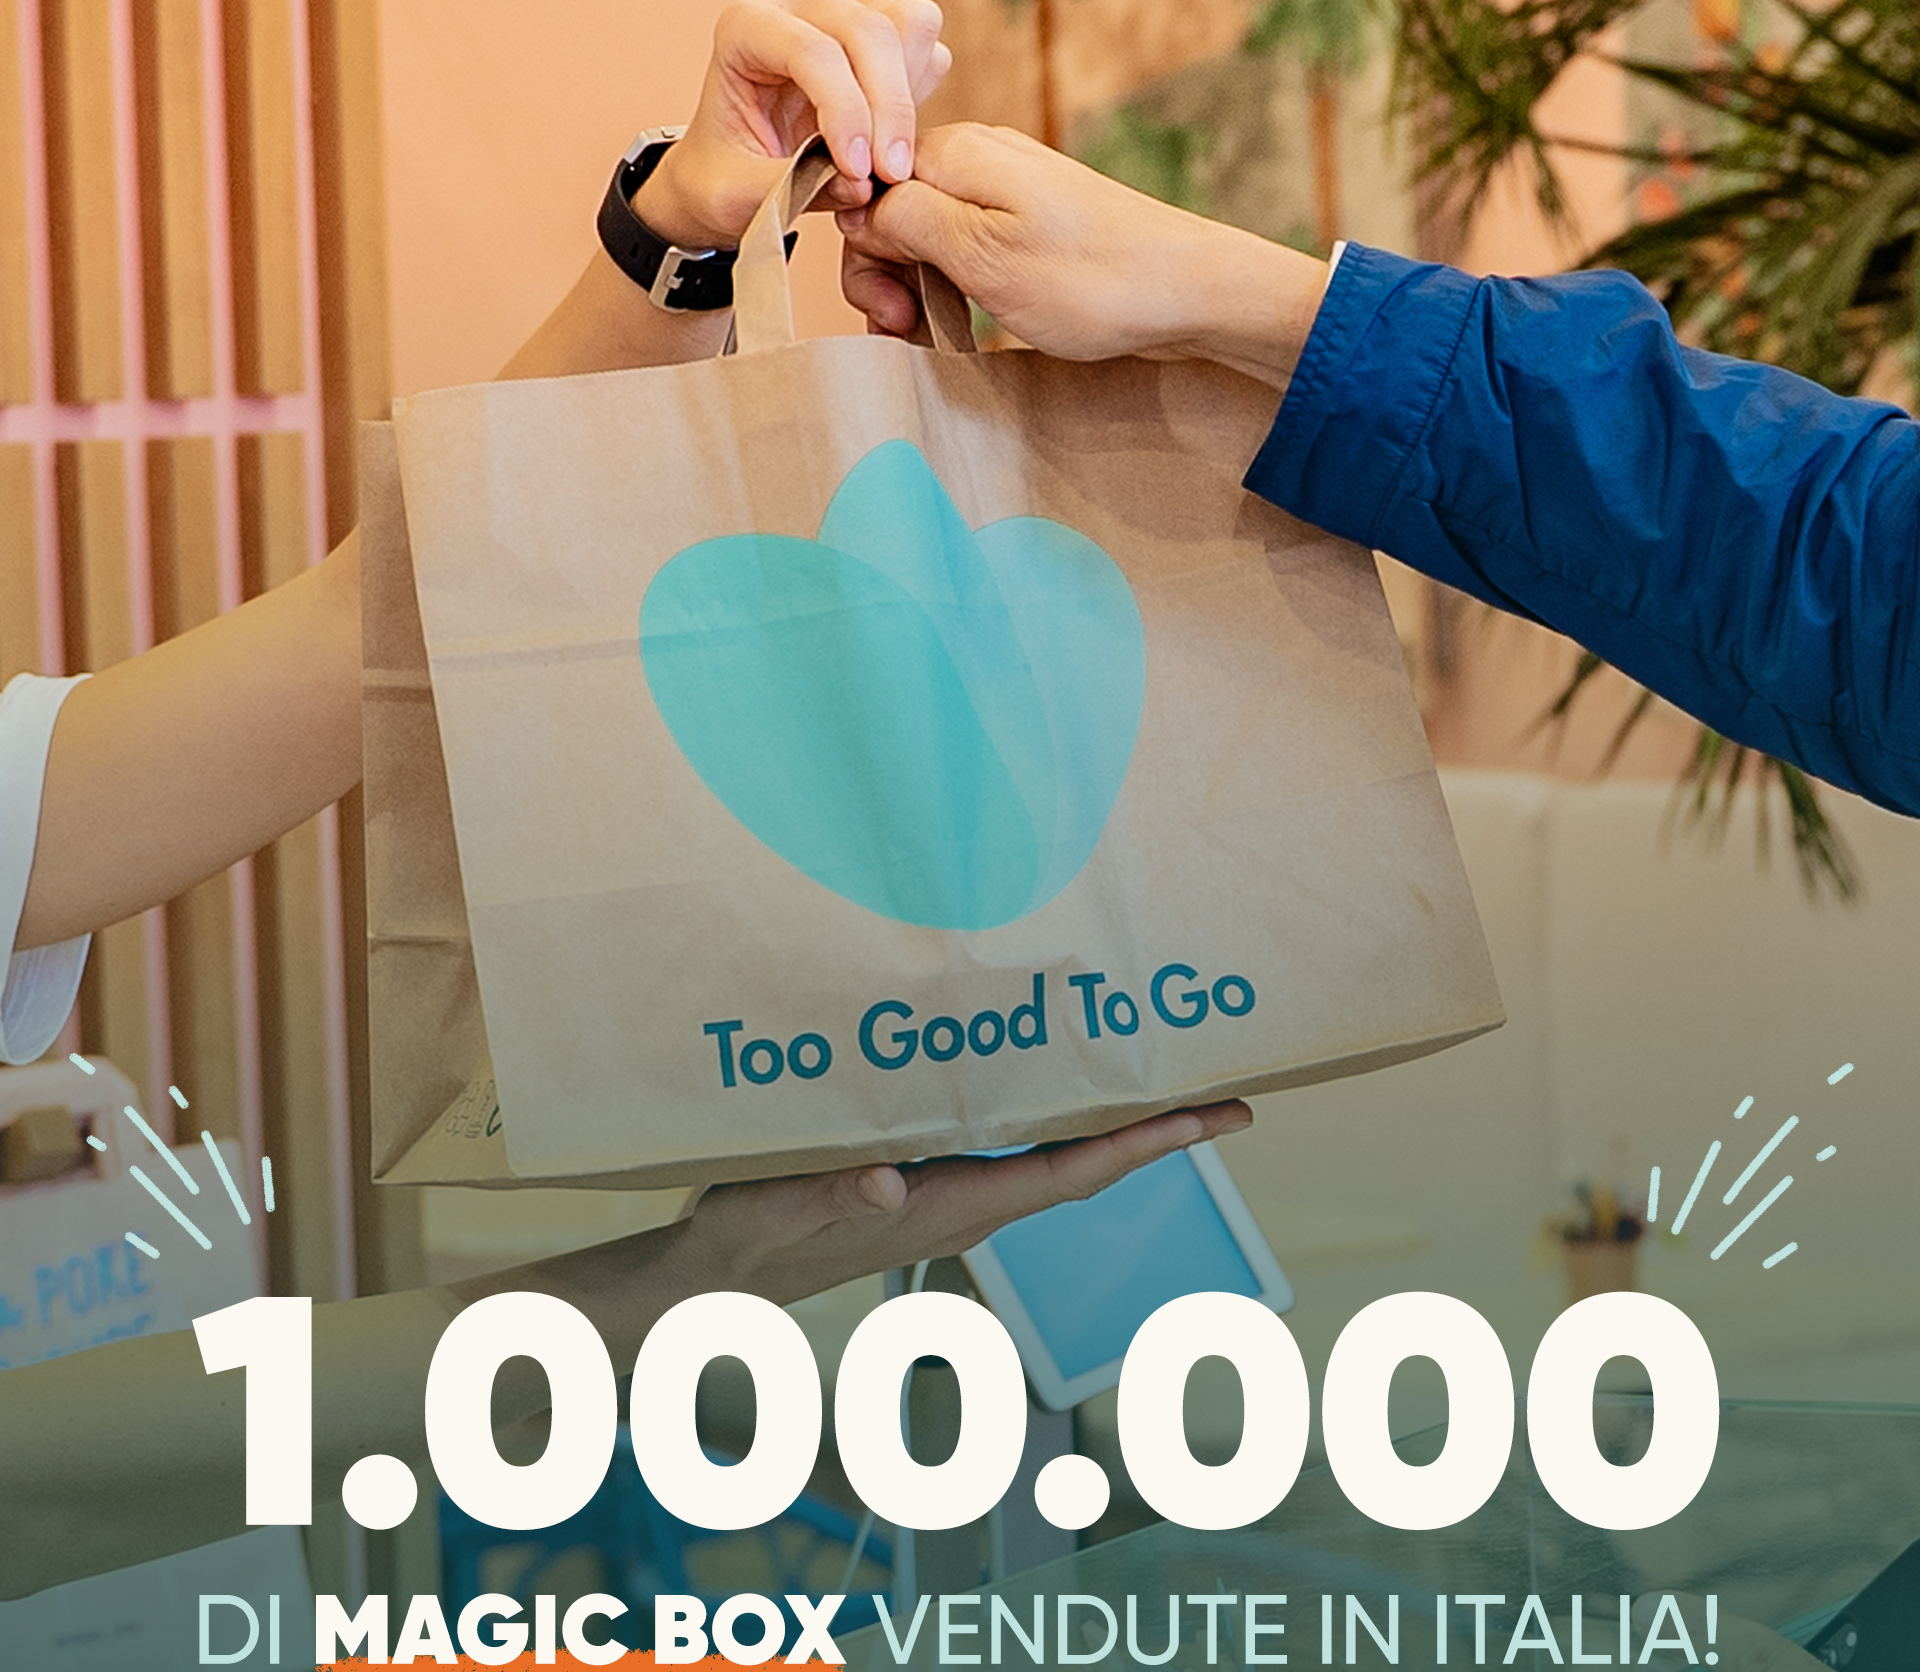 Too Good To Go: vendute 1 milione di Magic Box